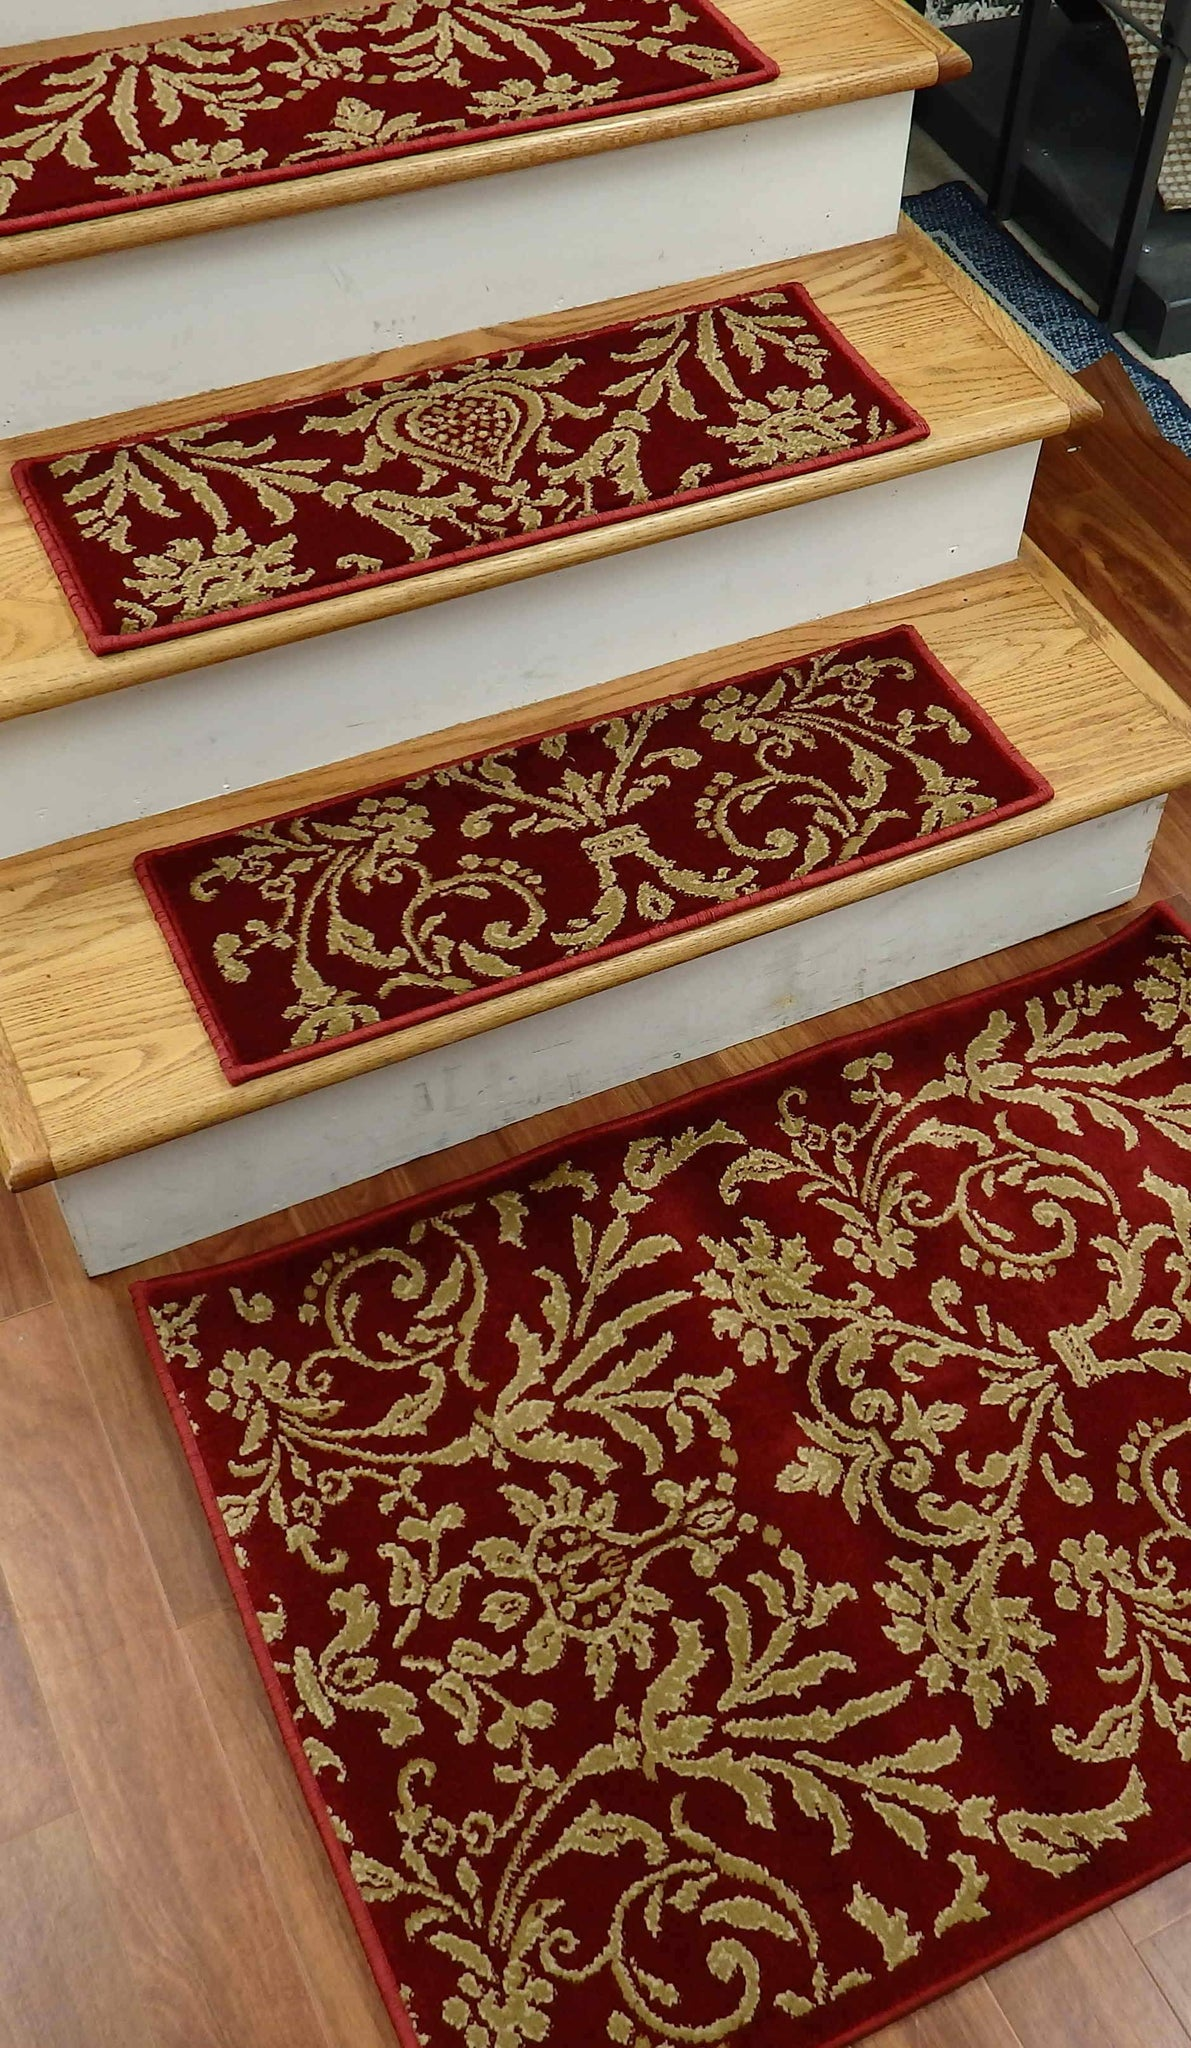 Concord Global Stair Treads Stair Treads Red Jewel  4940 26in x 9in Set of 14 Pcs With Non Slip Pad